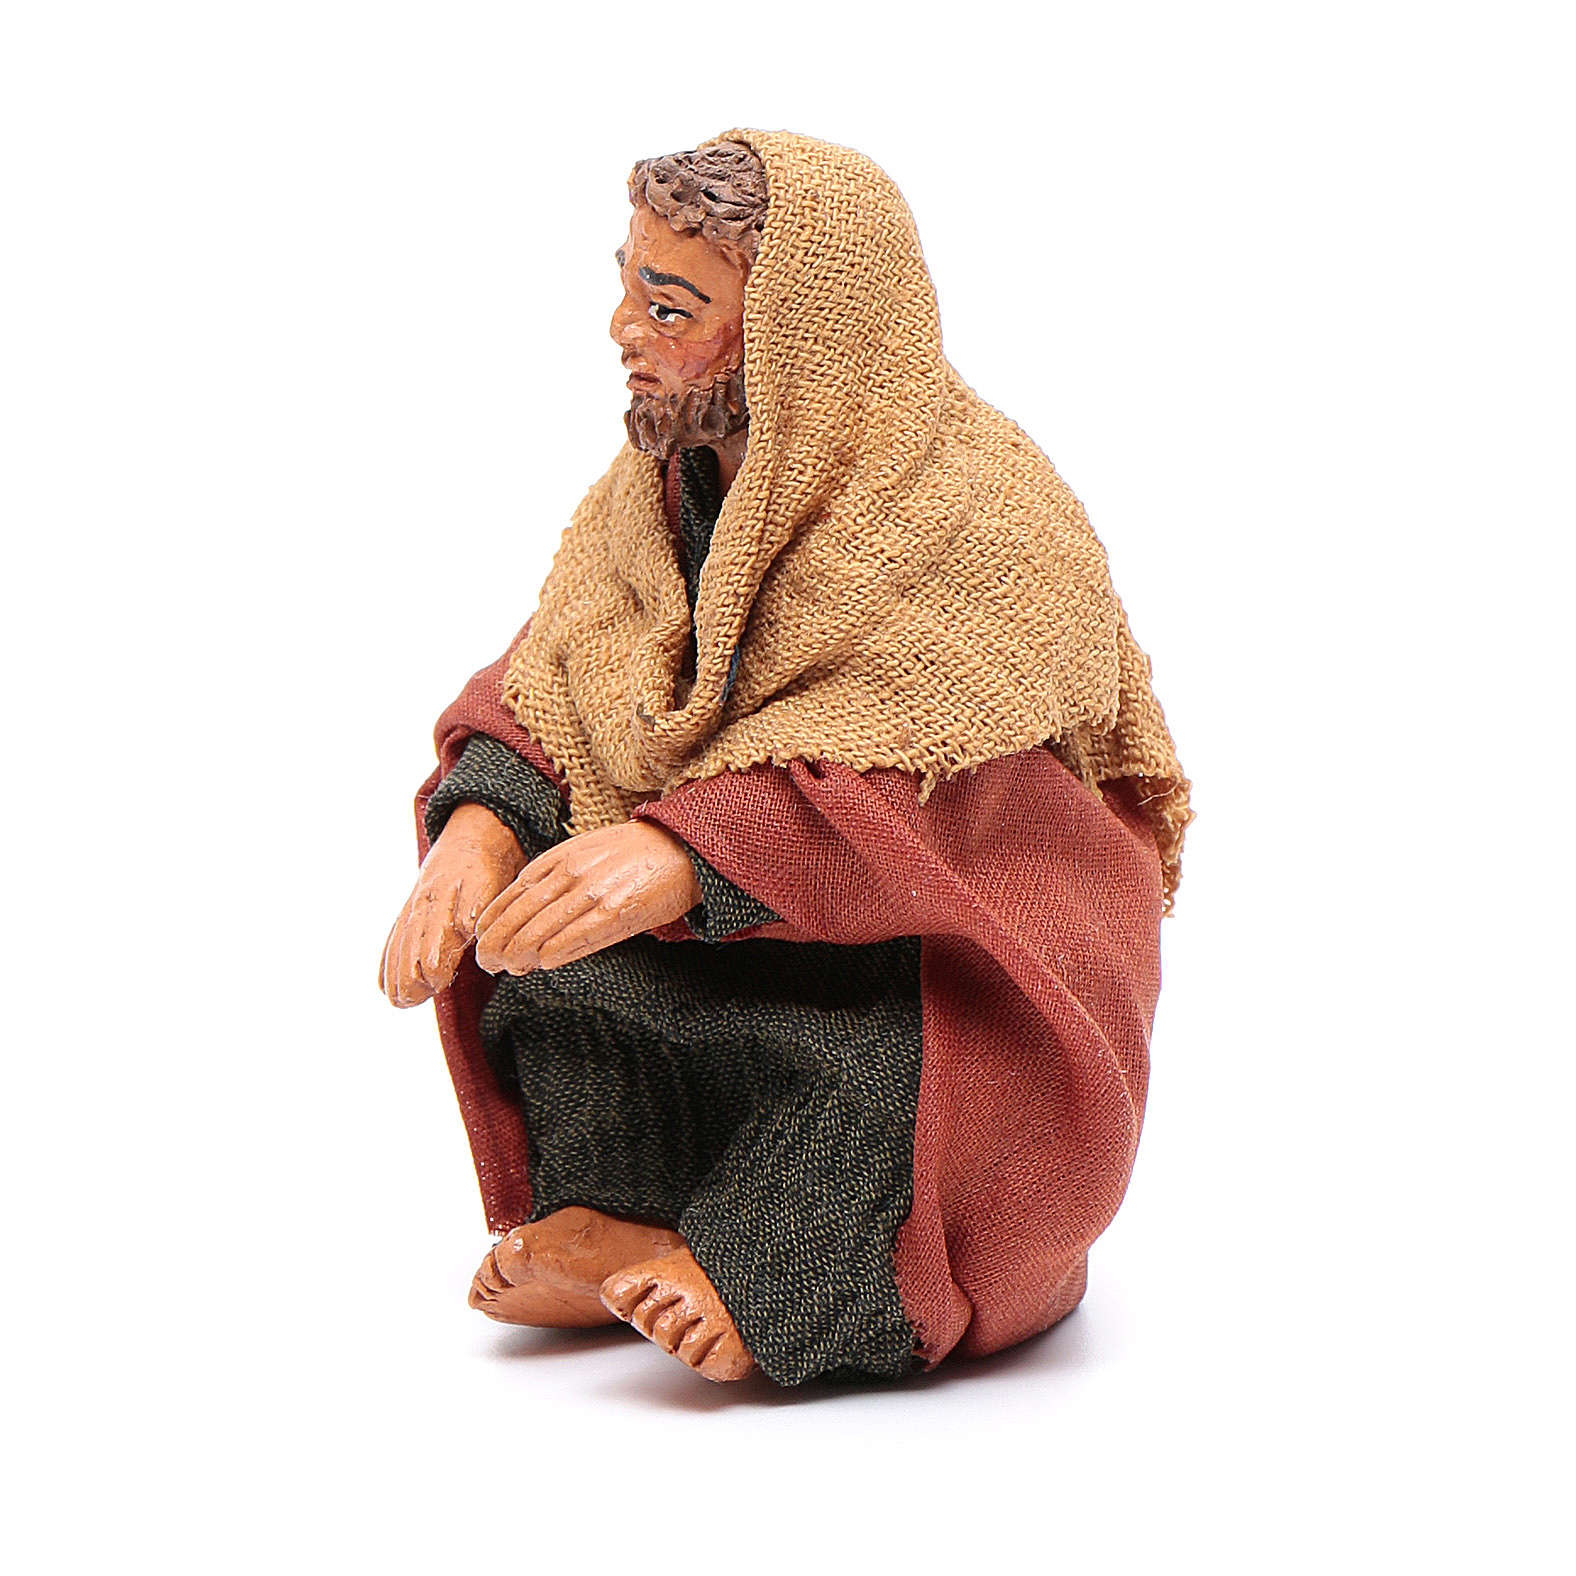 Man warming hands 10cm, Neapolitan Nativity scene 4